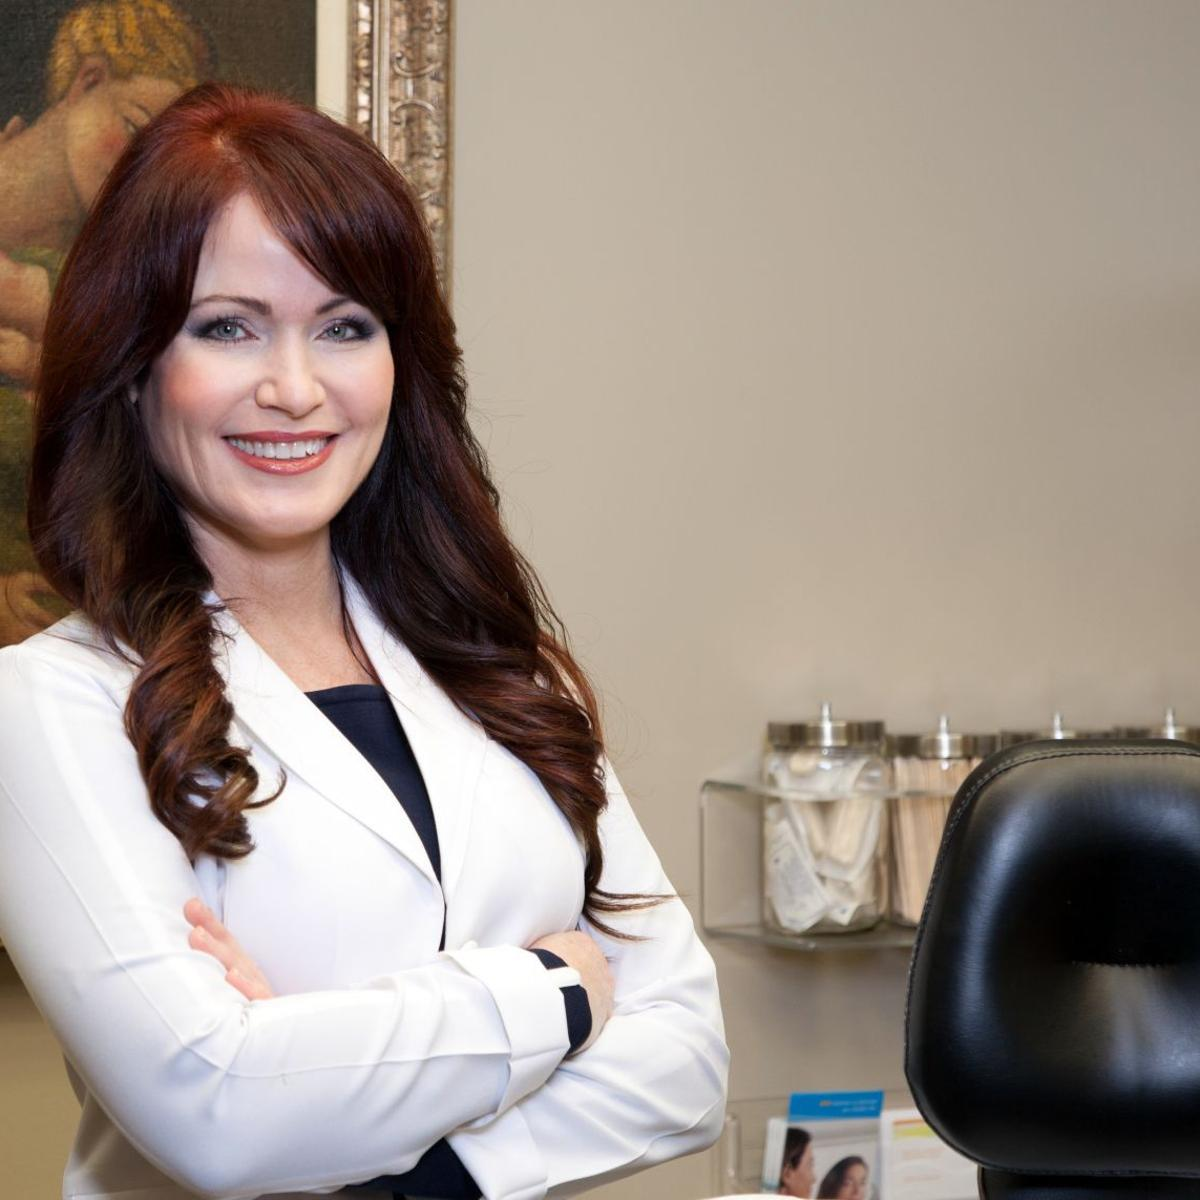 BR dermatologist will appear on 'The Doctors' show Monday